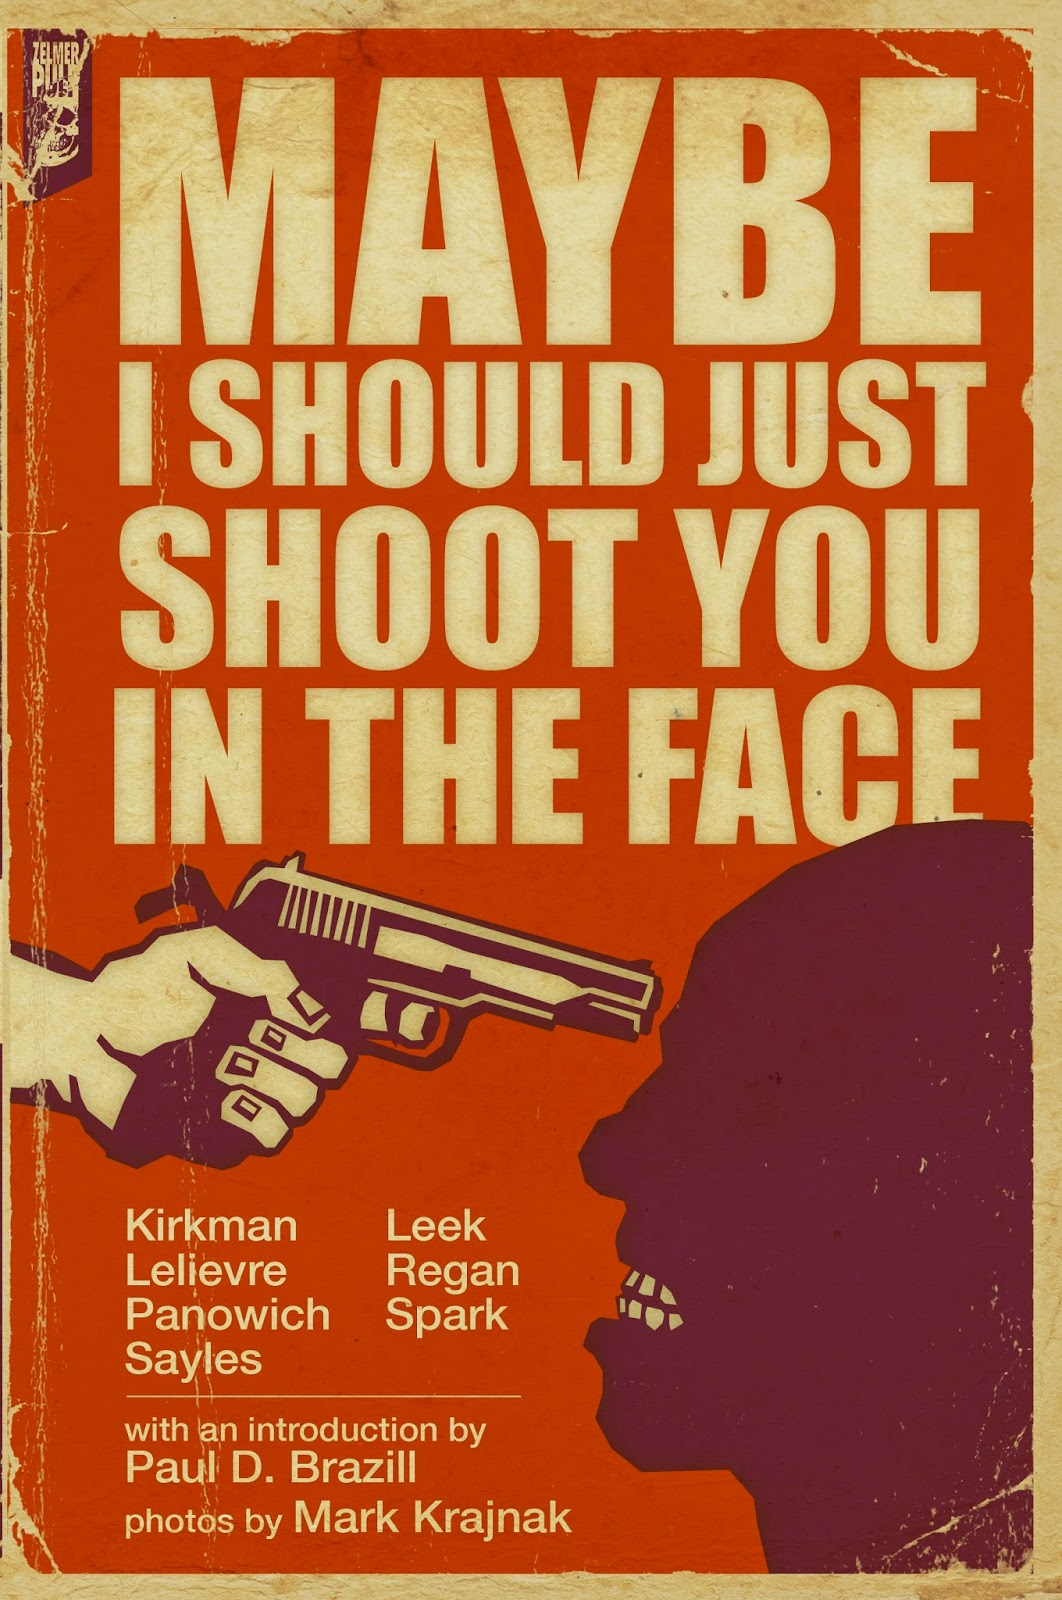 http://www.amazon.com/Maybe-Should-Just-Shoot-Face-ebook/dp/B00OC4CTYA/ref=sr_1_1?ie=UTF8&qid=1413191629&sr=8-1&keywords=Maybe+I+should+just+shoot+you+in+the+face